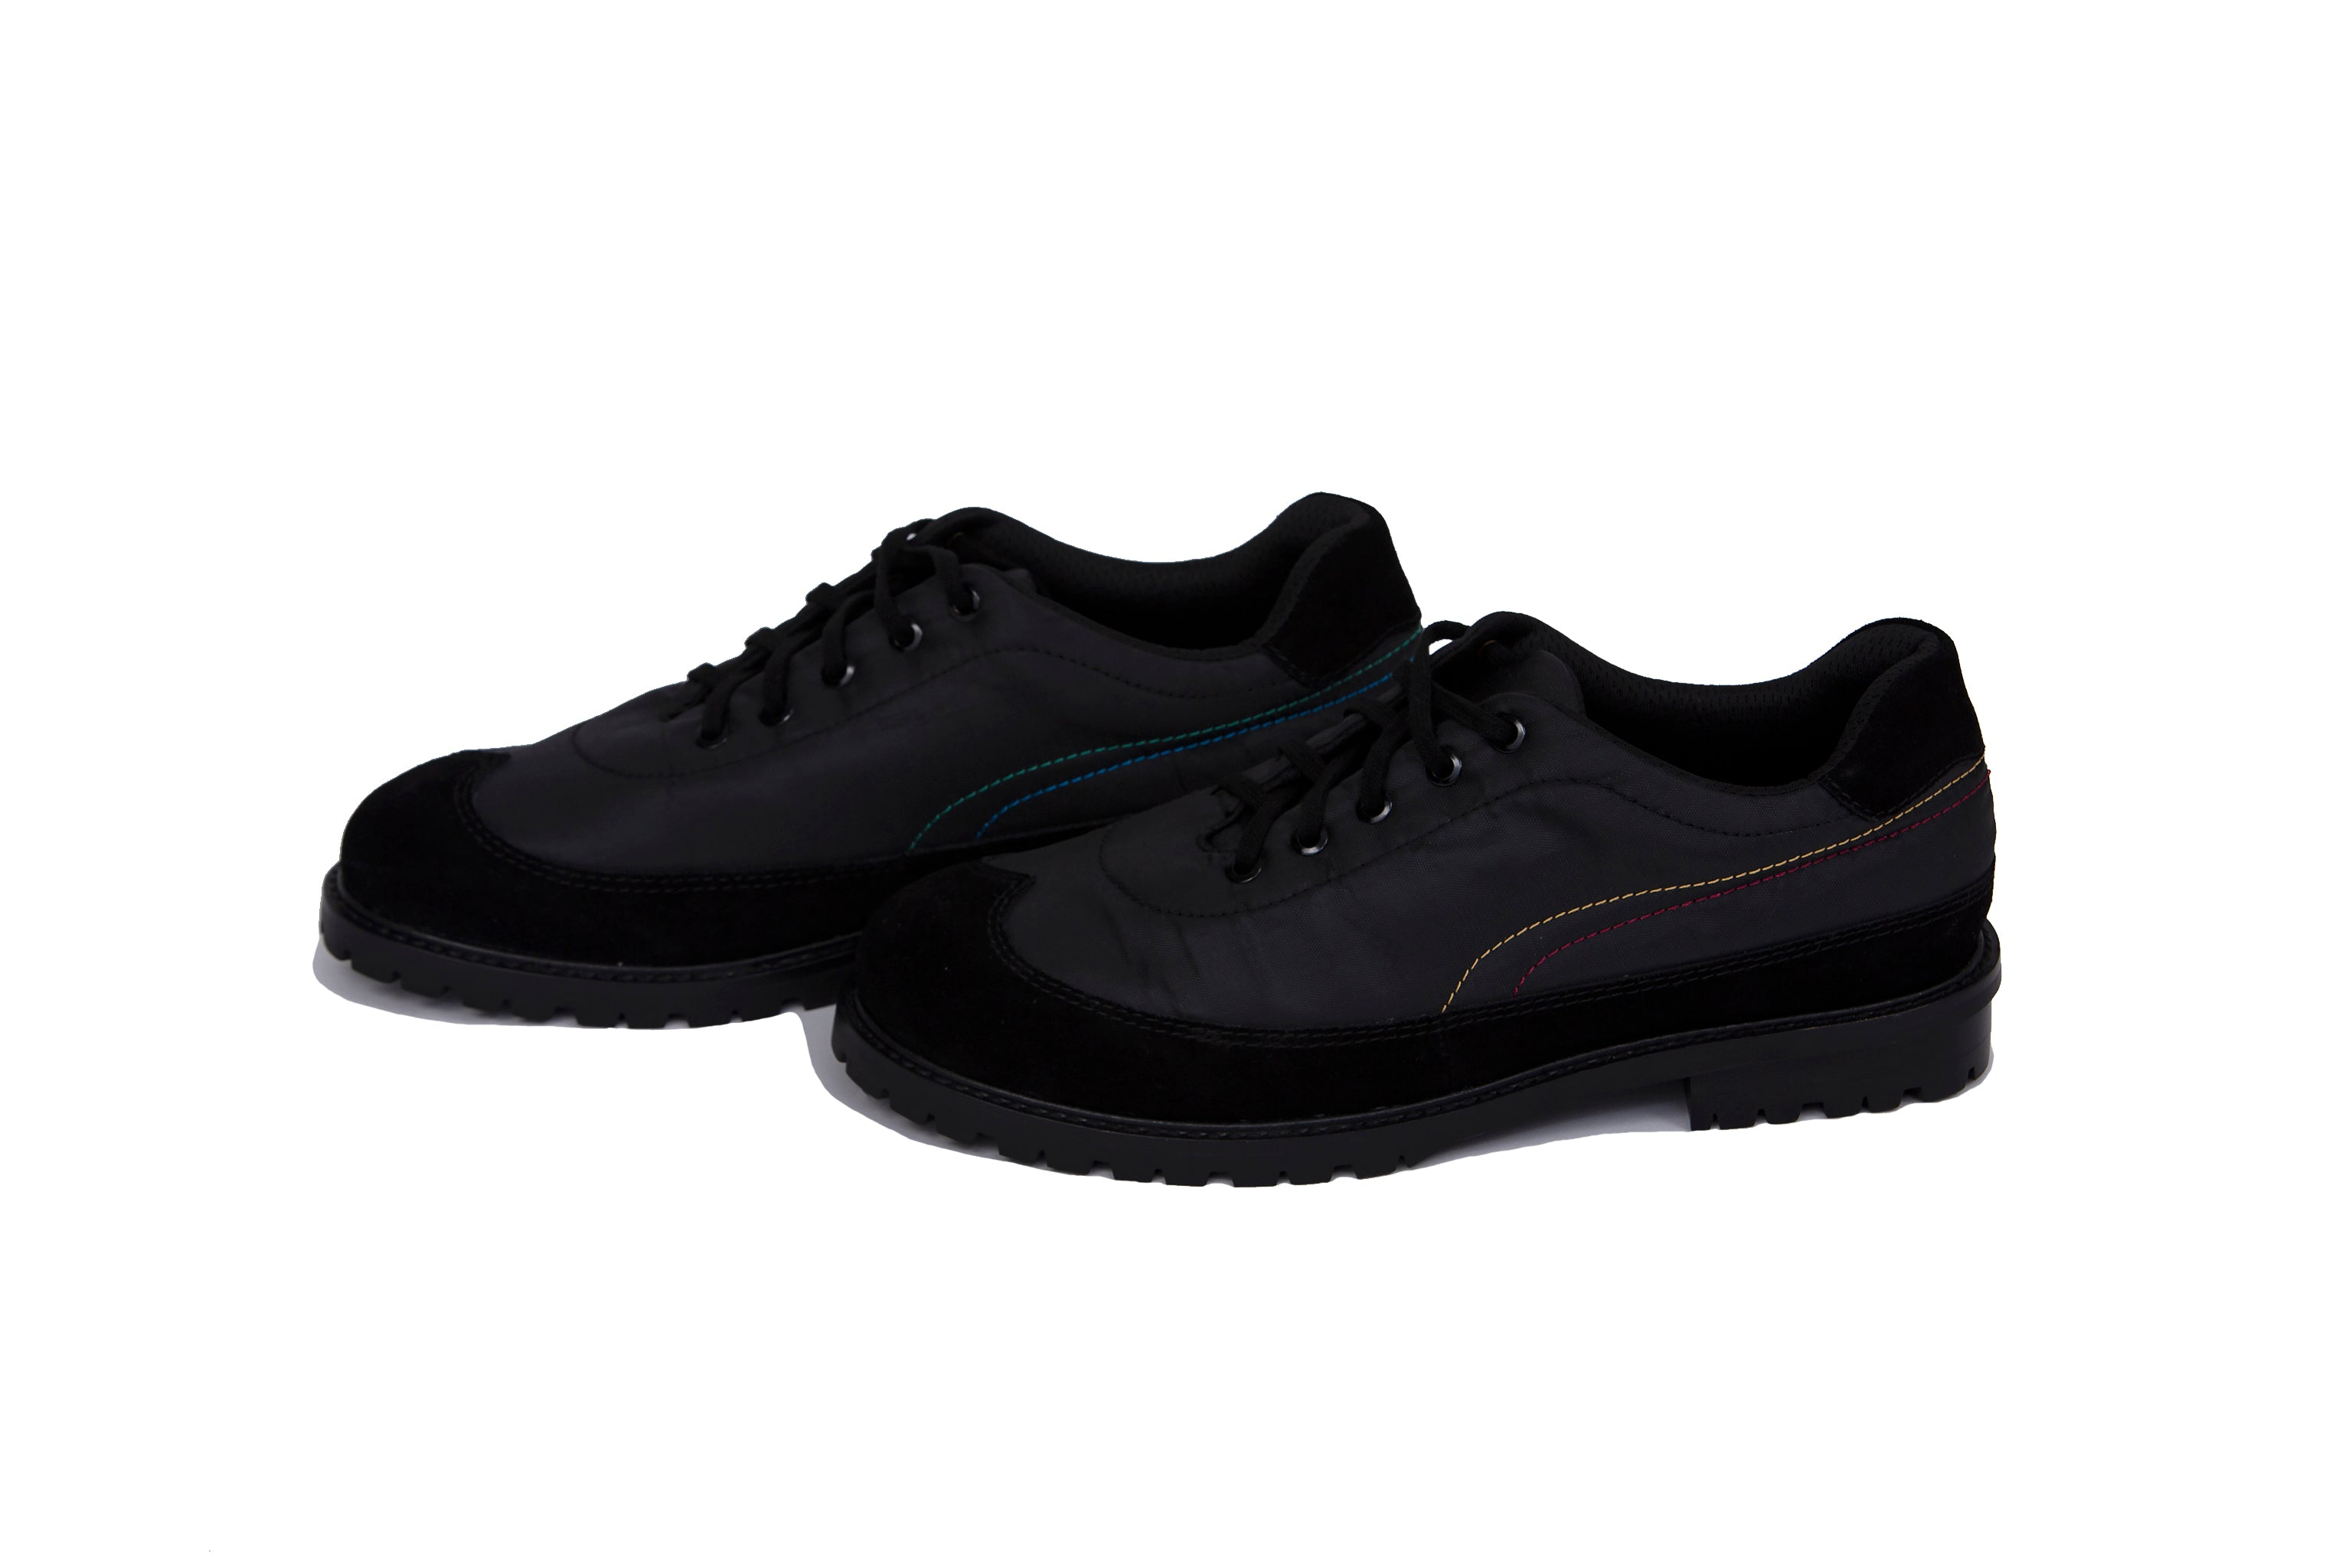 Athlete leather shoes